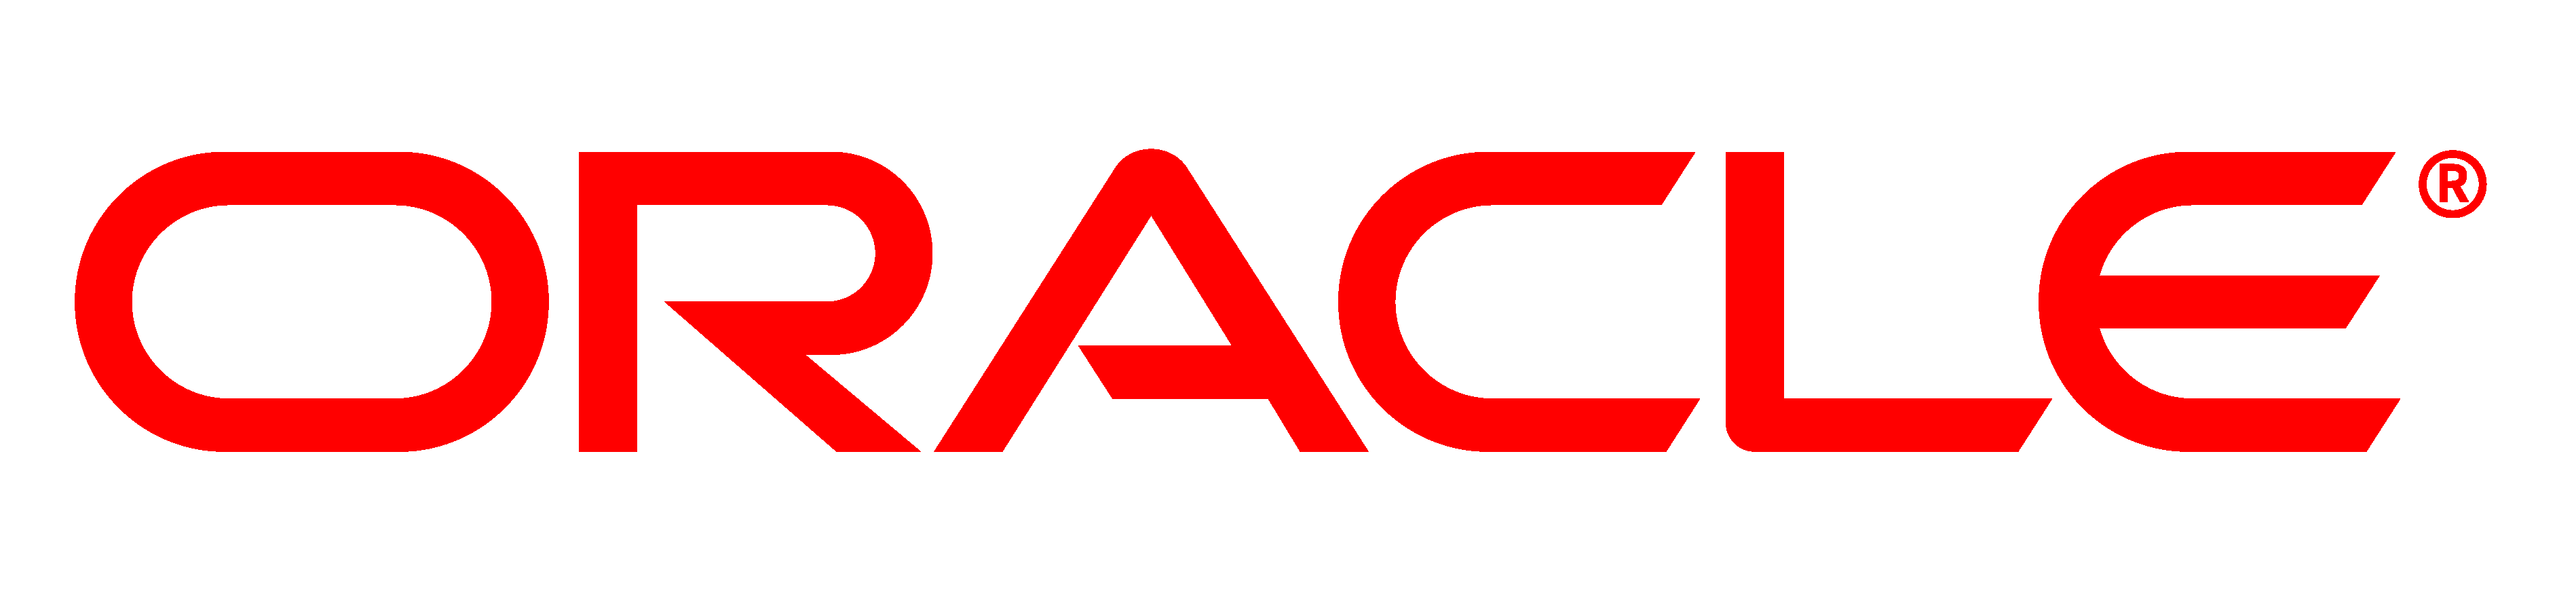 Oracle Logo Png Transparent Pngpix